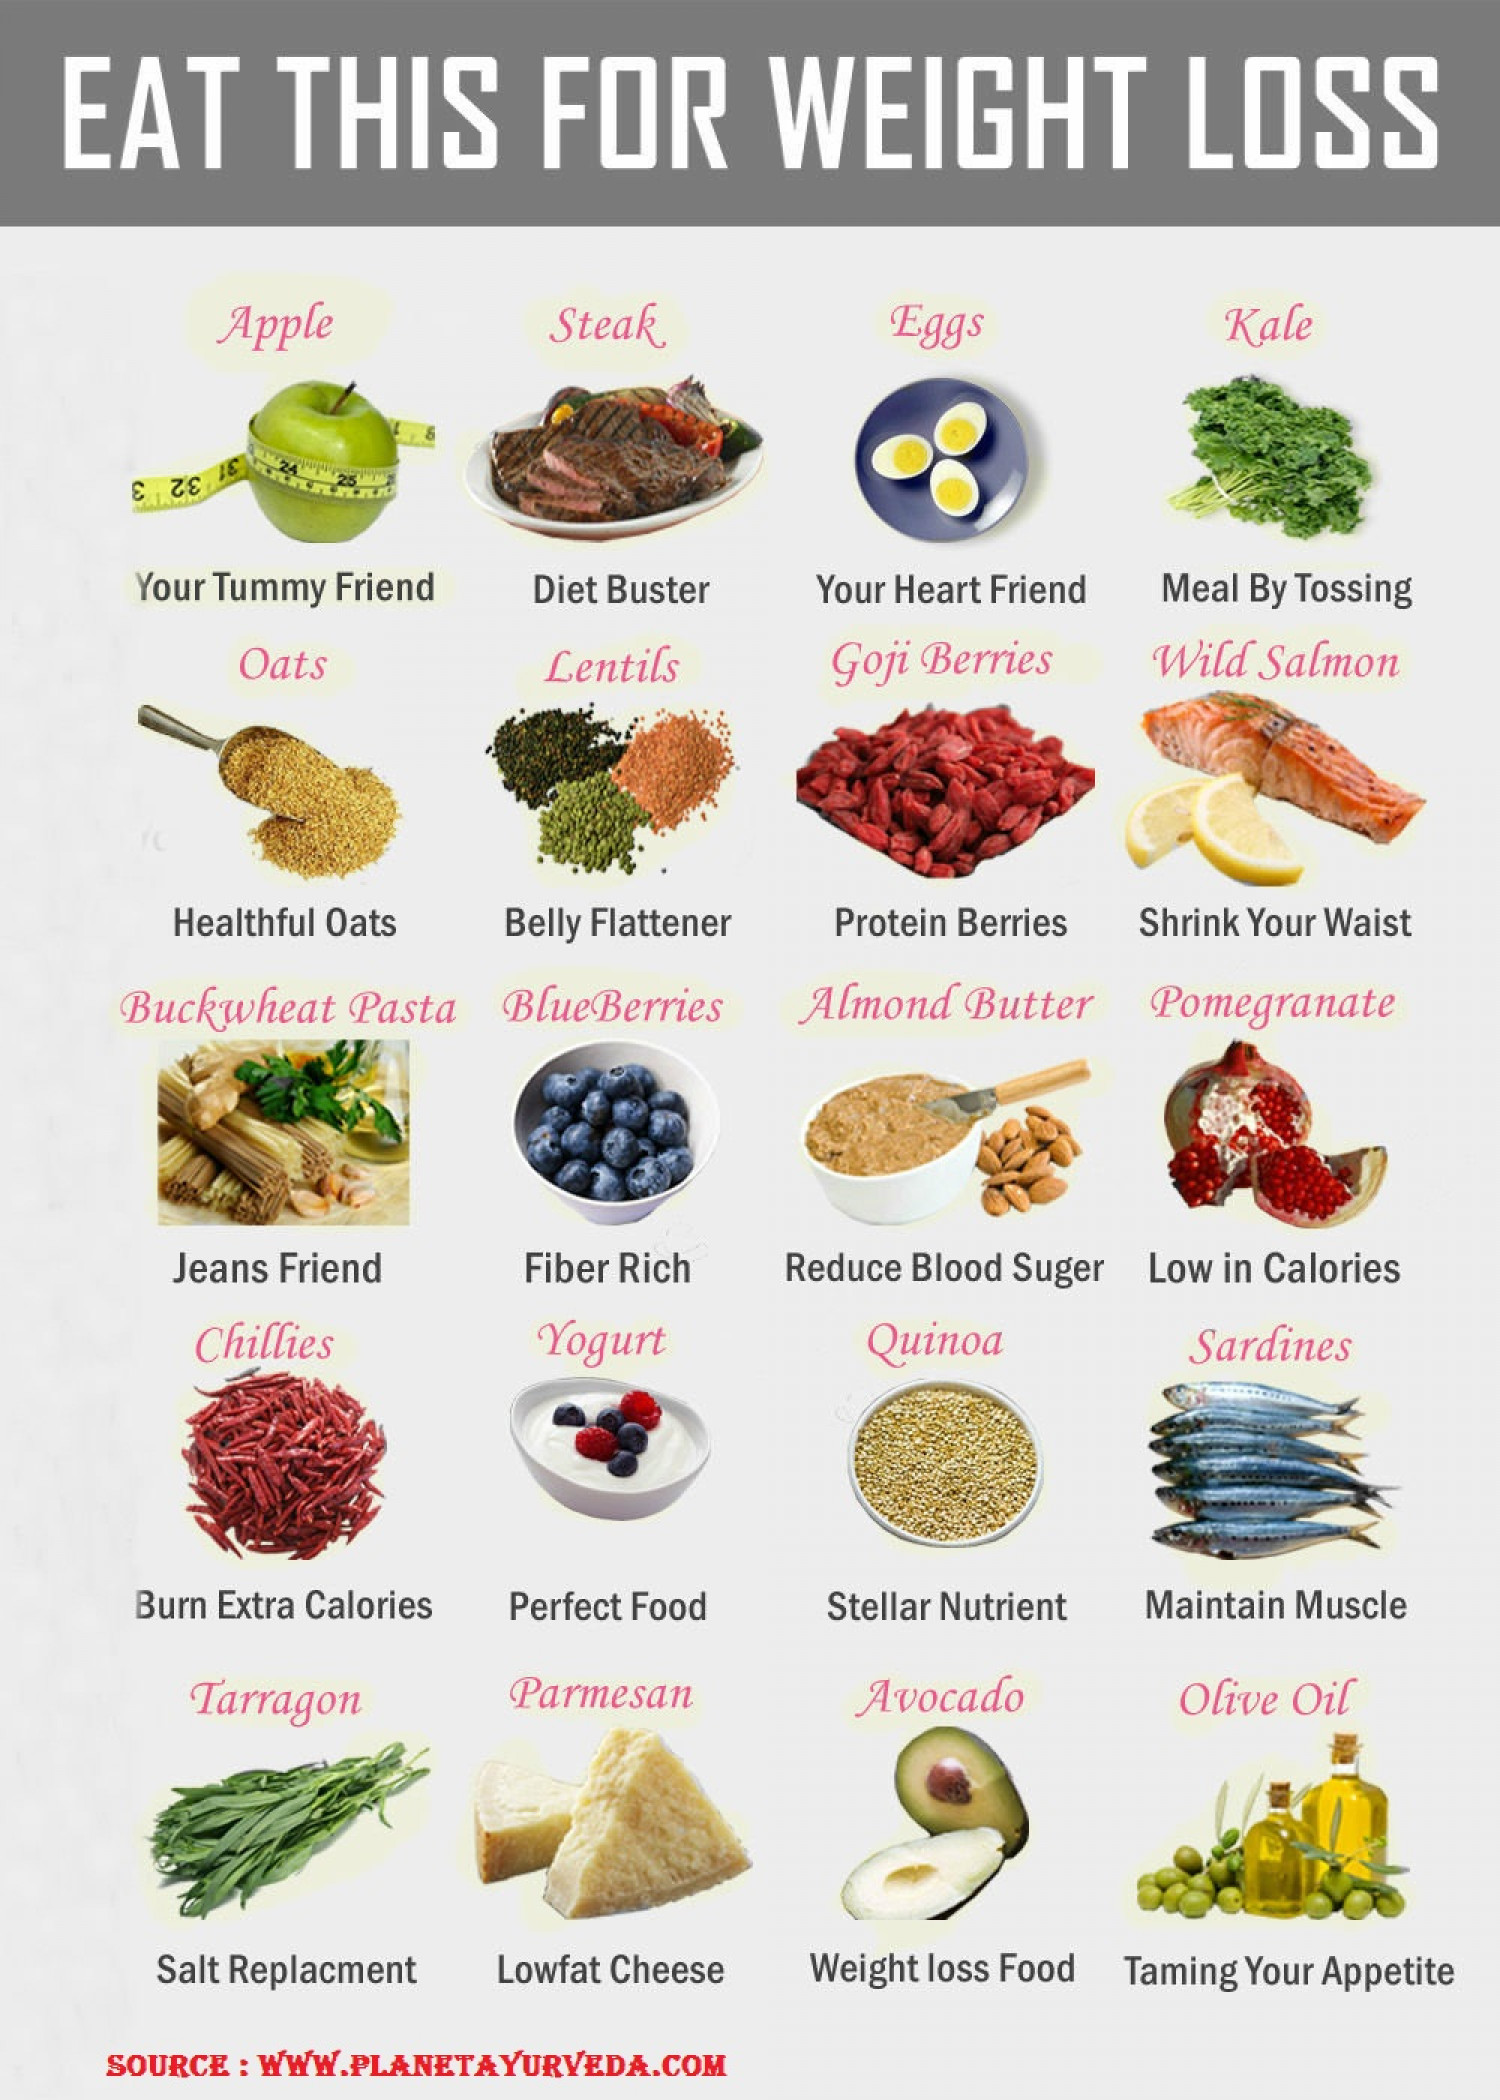 Eat This For Weight Loss Infographic